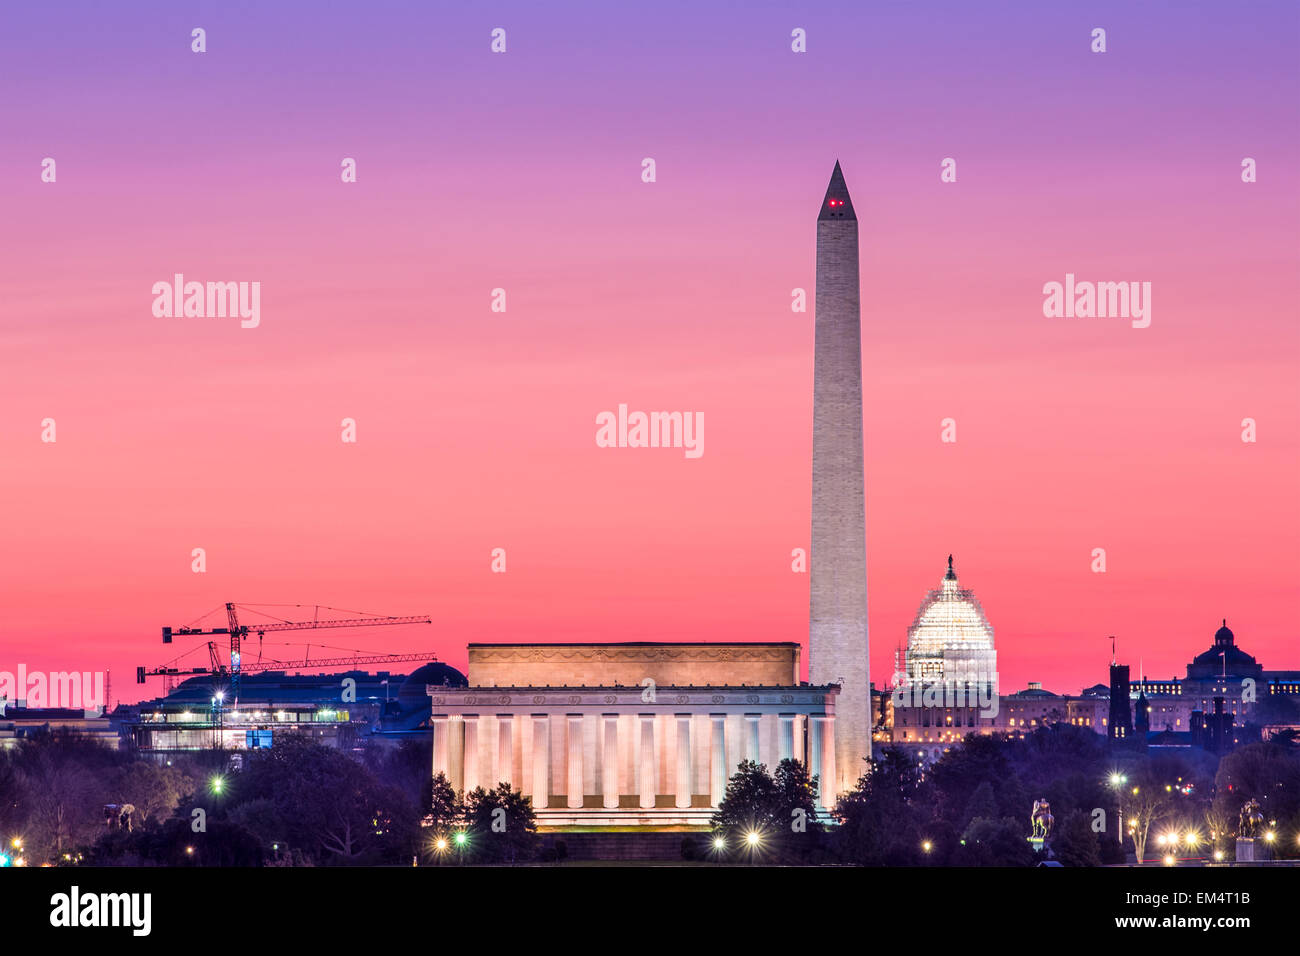 Washington Monument skyline. Immagini Stock